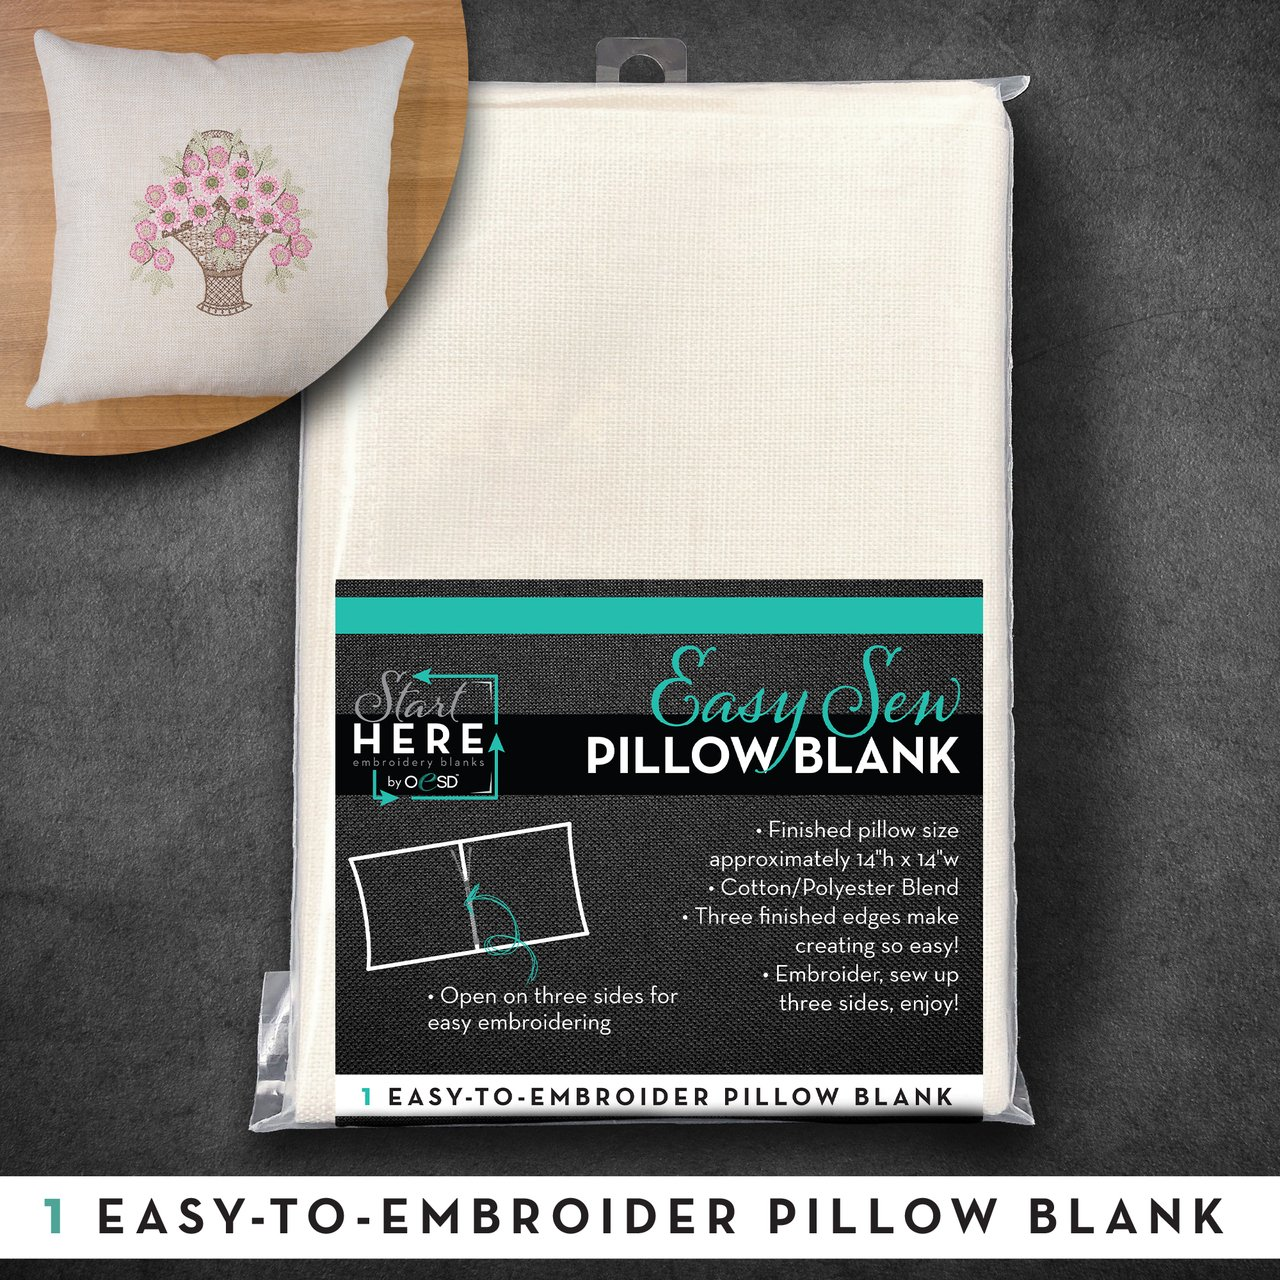 OESD Easy Sew Pillow Blank